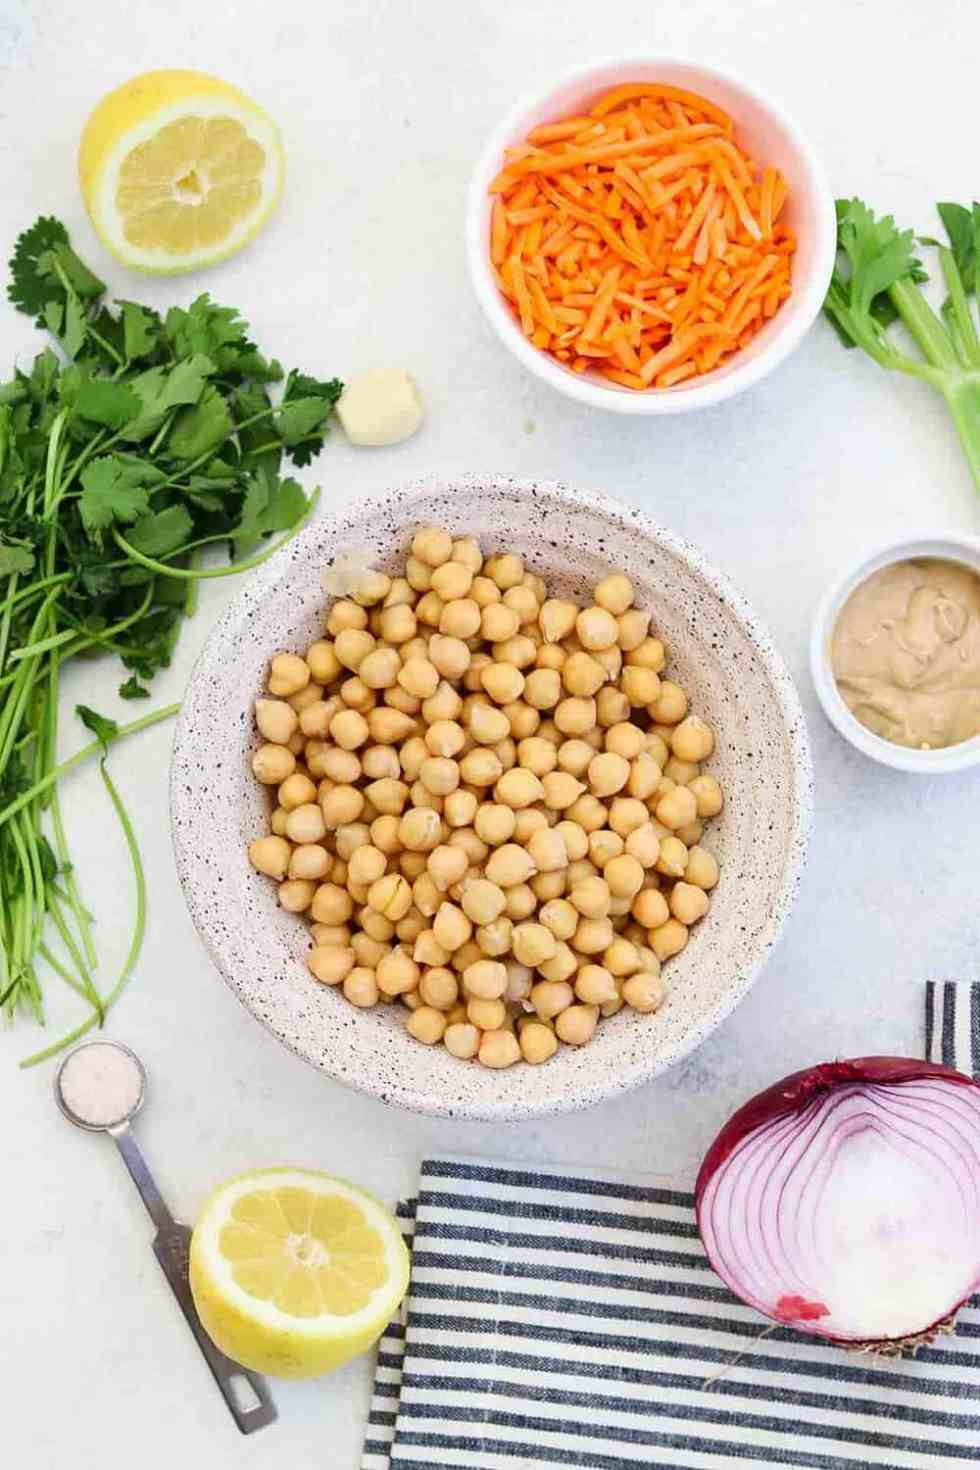 Ingredients for the chickpea salad arranged on a white backdrop.